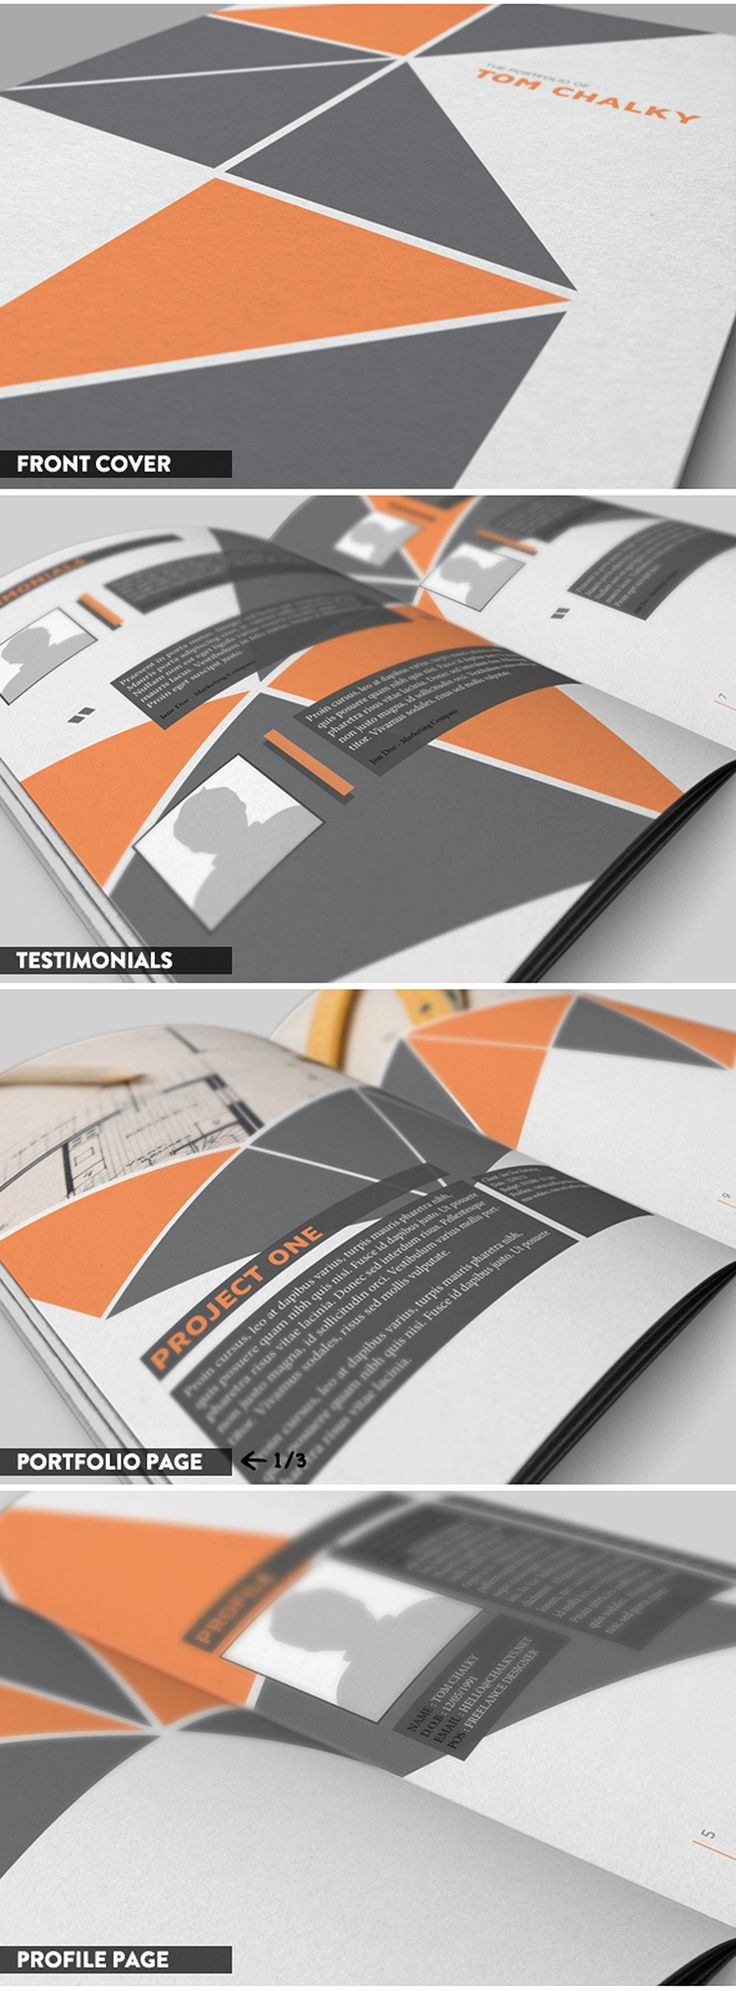 case study page design inspiration A national home fixing franchise includes locations, faq and franchise request form.